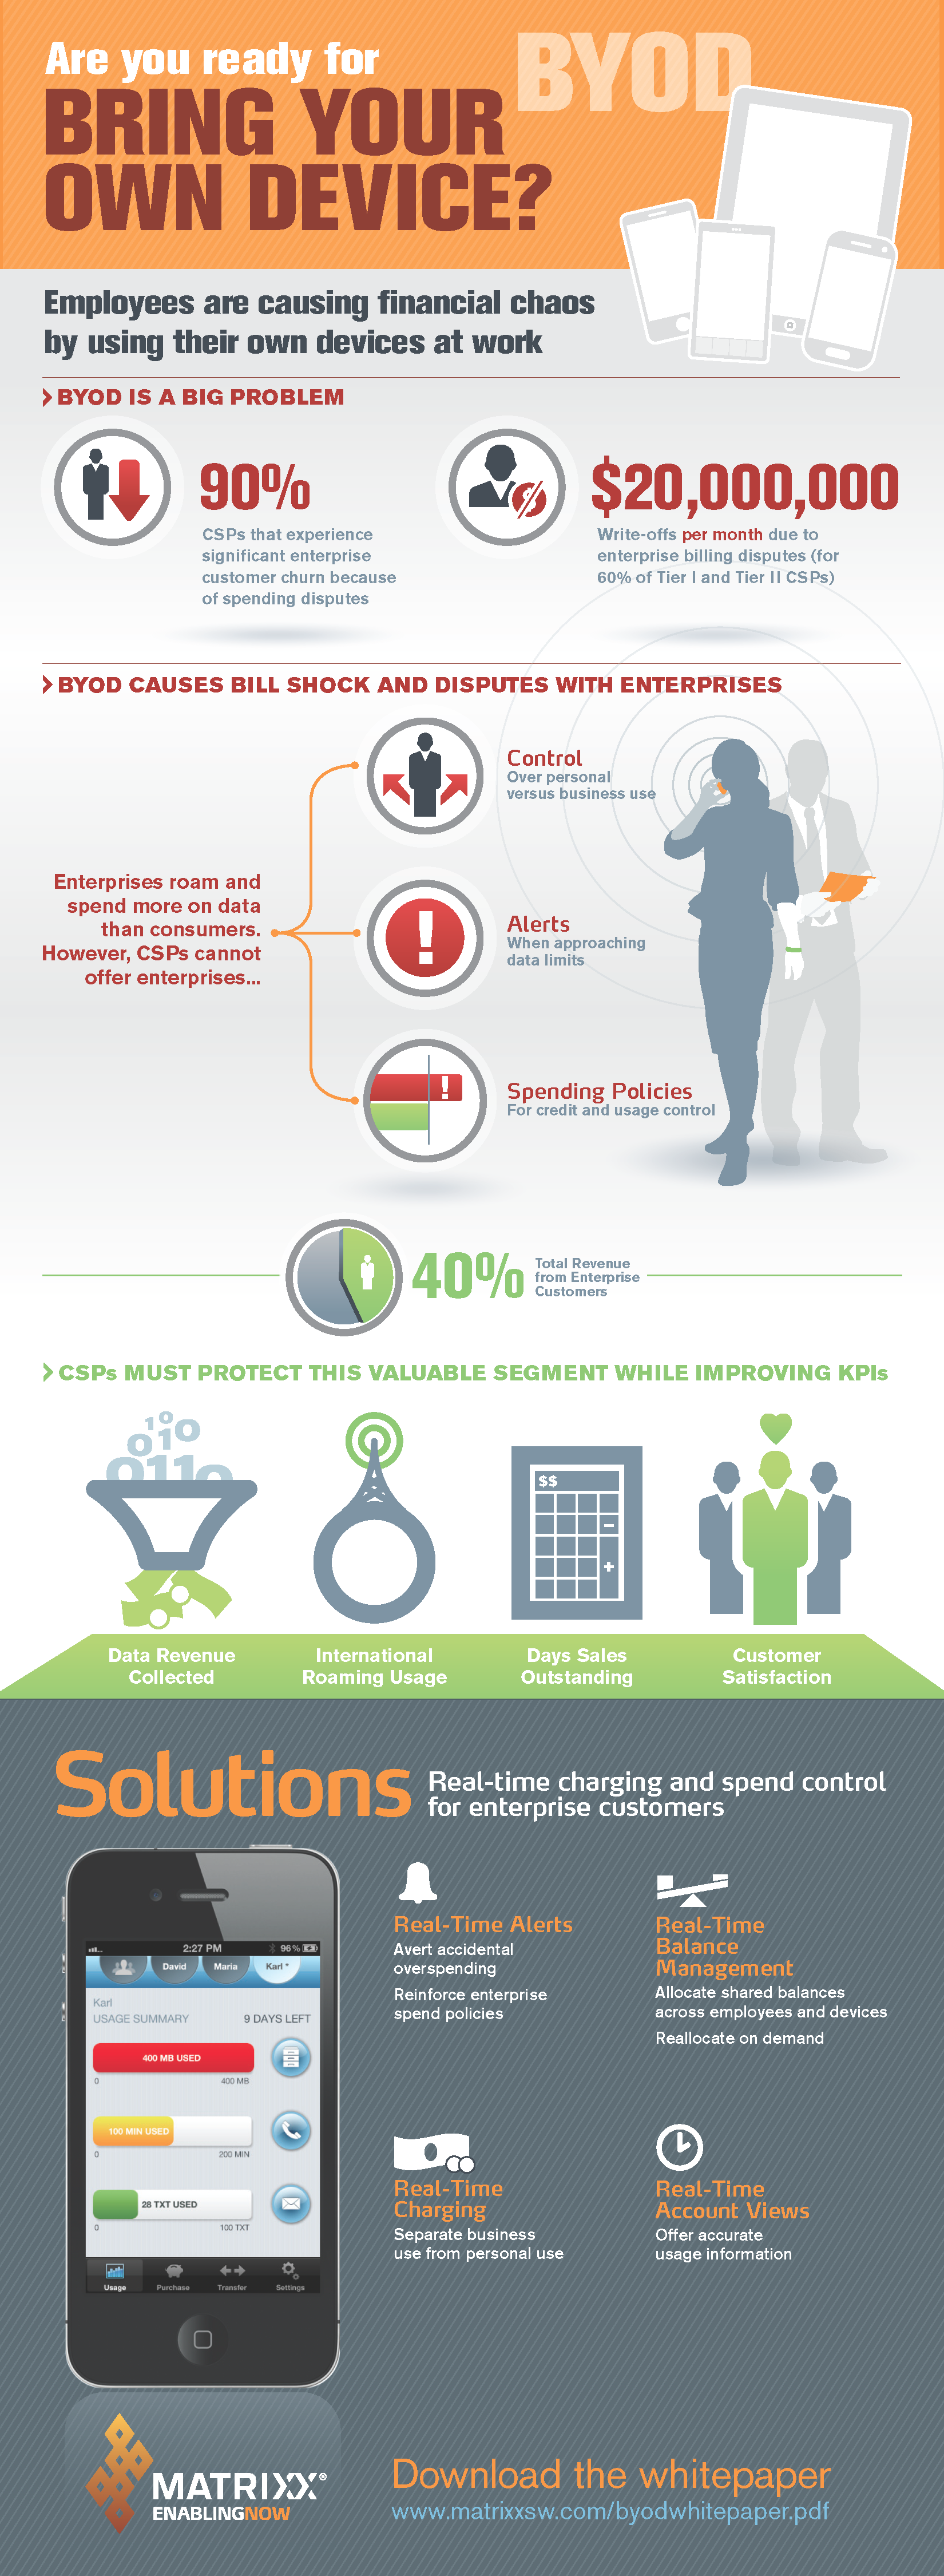 Matrixx Software BYOD Infographic